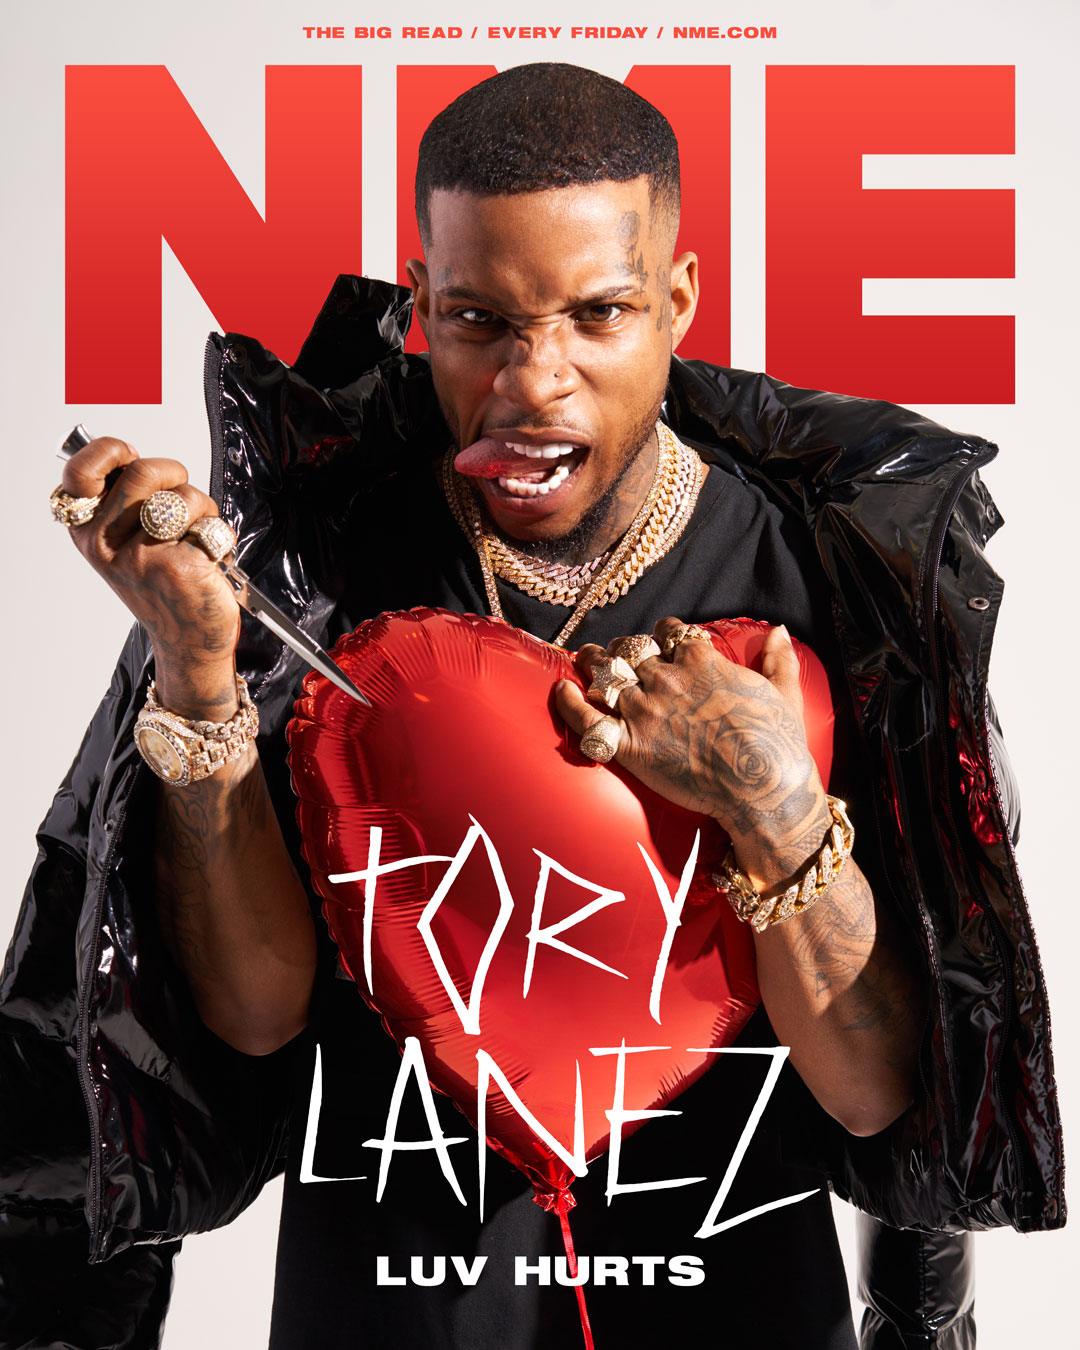 Tory Lanez Luv Hurts The Collected Works Of Kevin Eg Perry